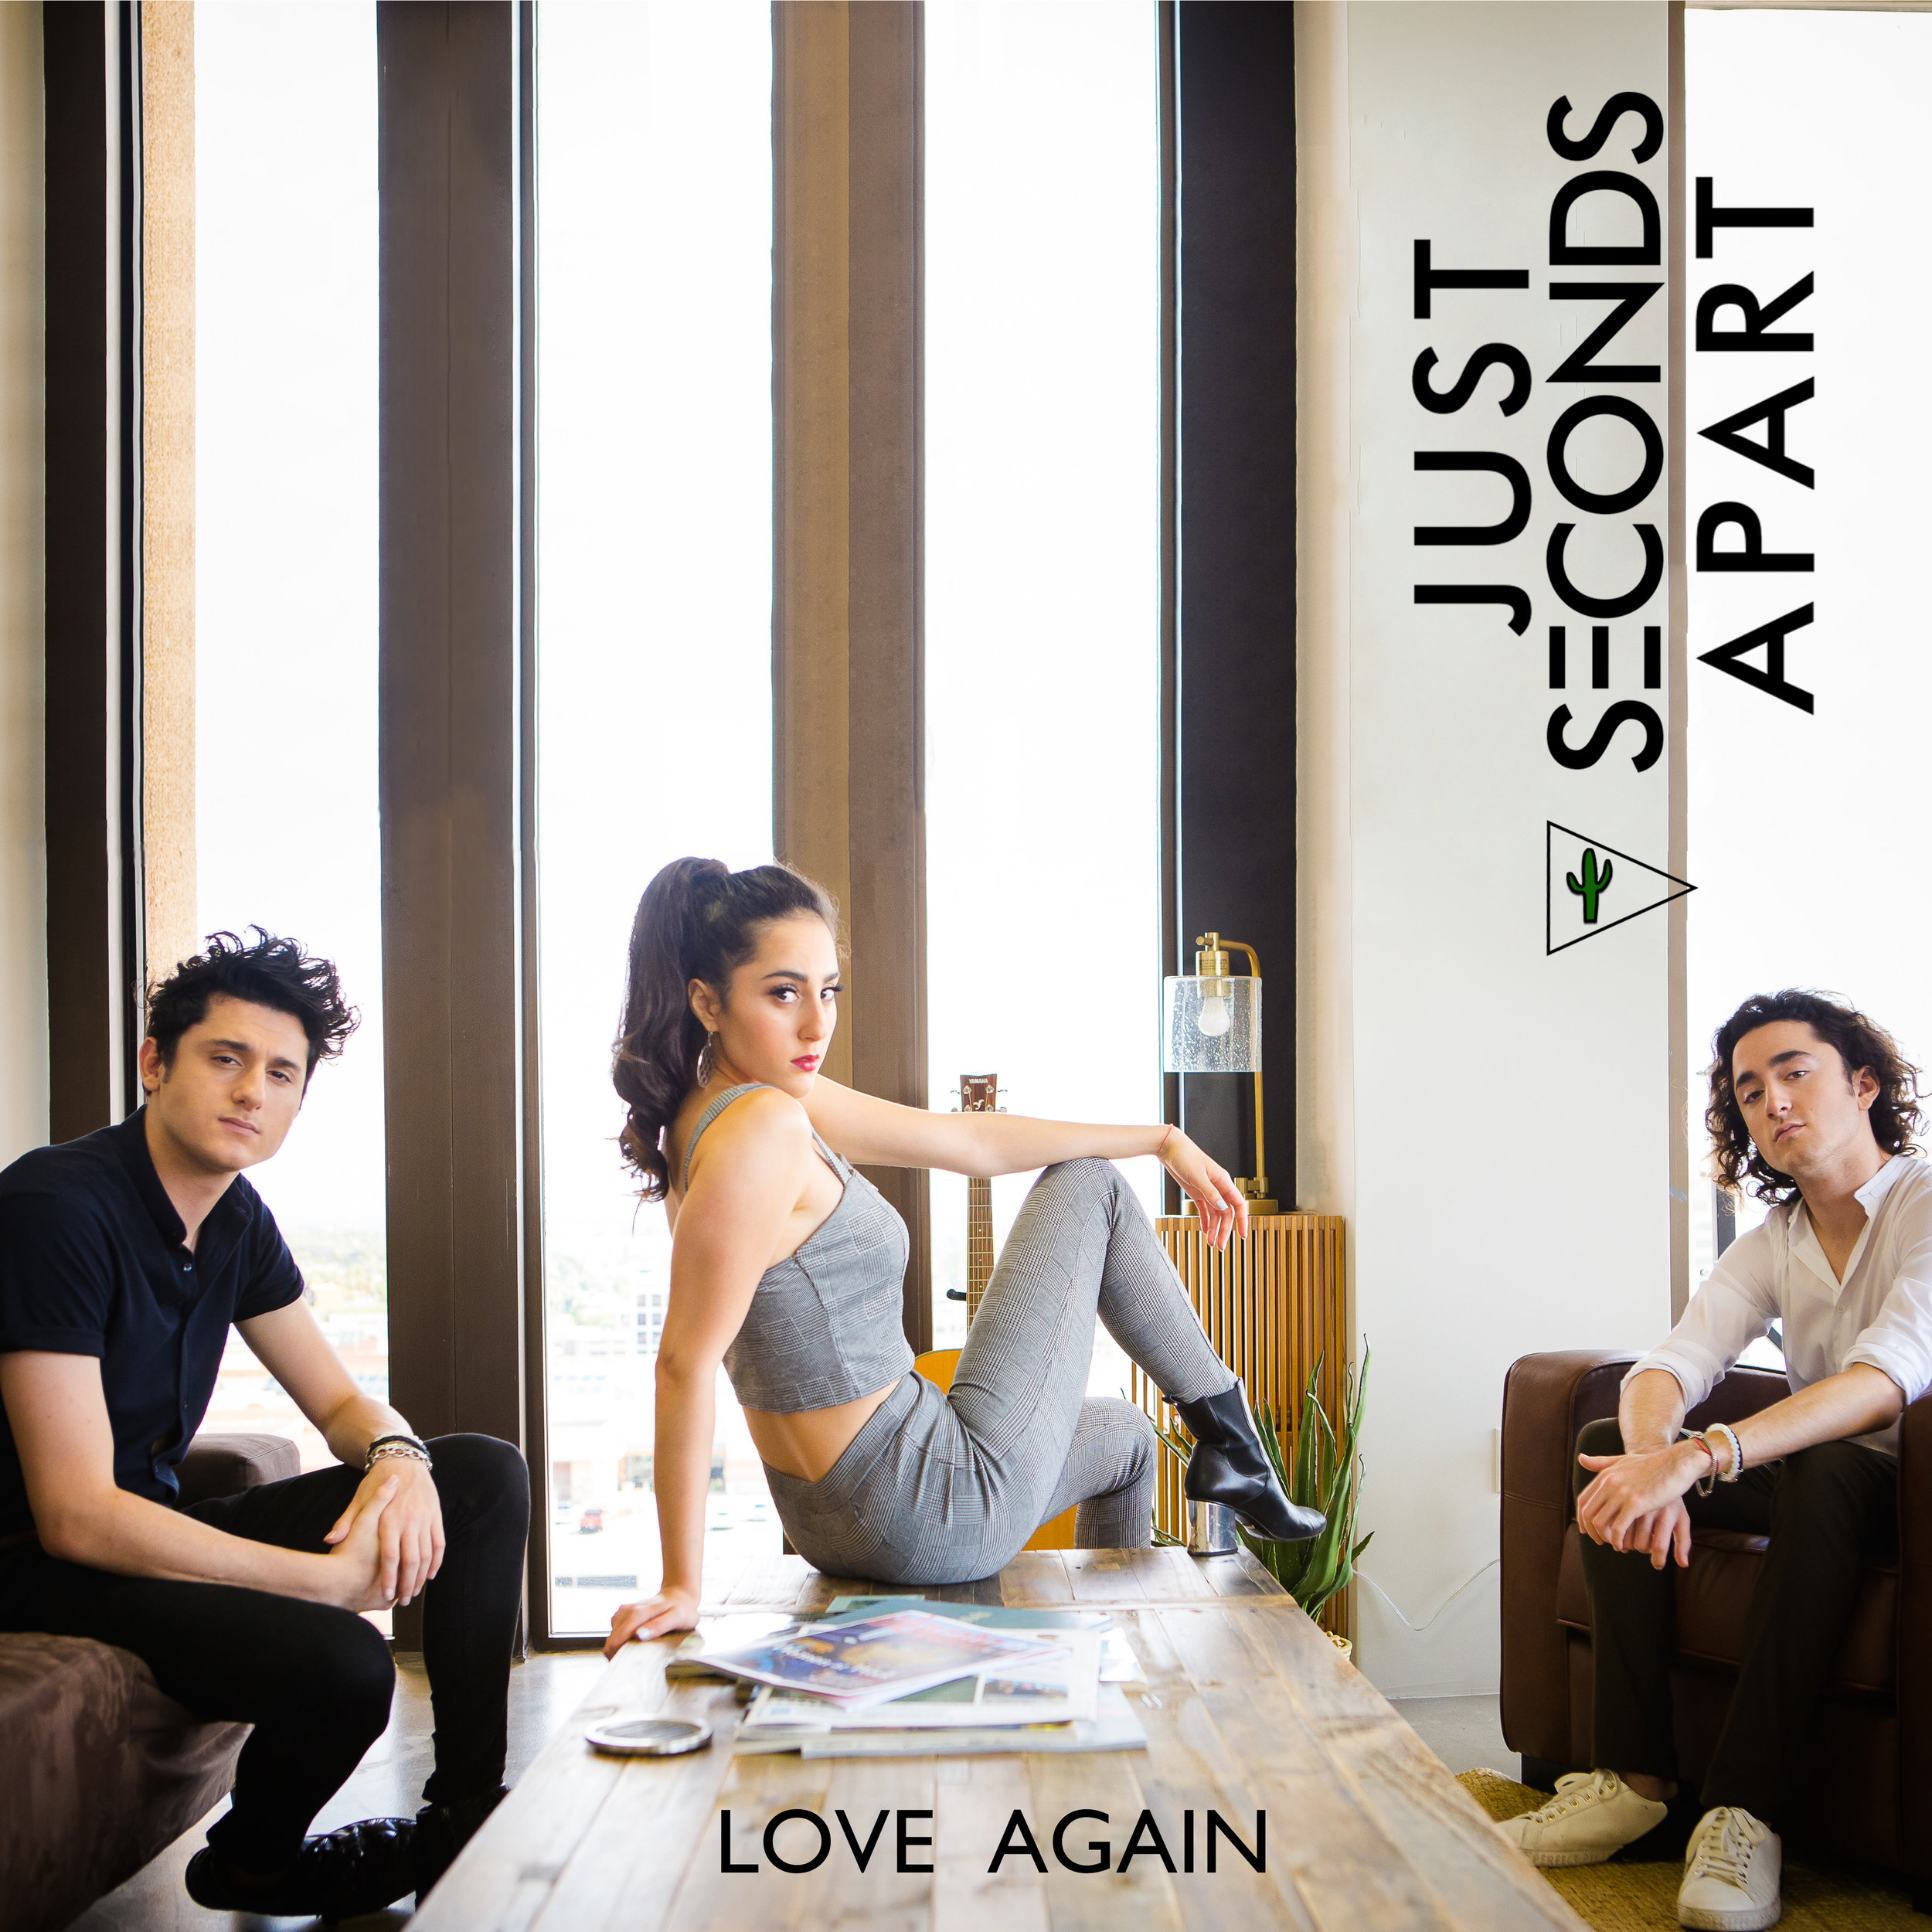 Love Again - Single - Official Artwork.jpg